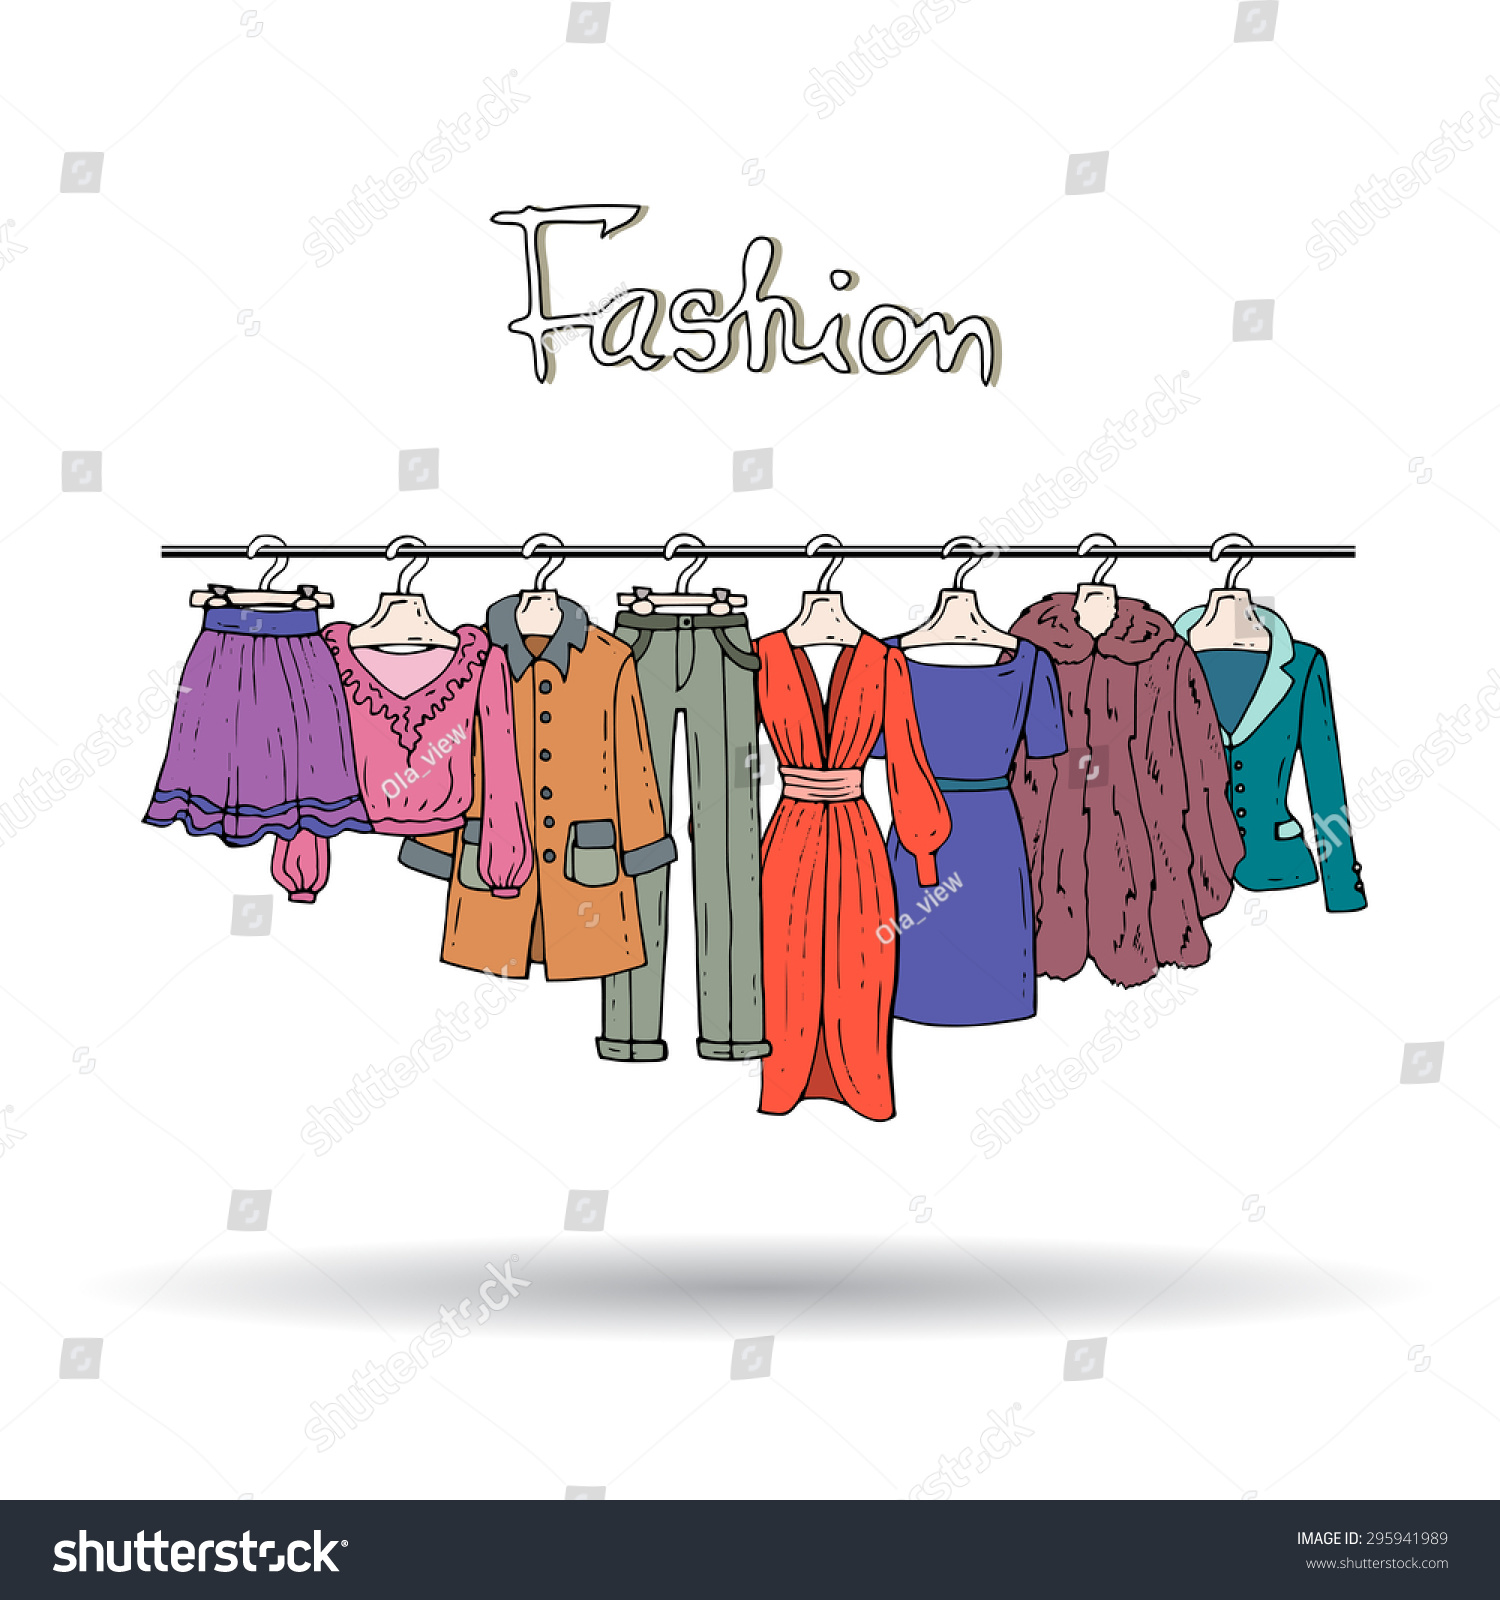 Cute Hand Drawn Illustration Fashionable Clothes Stock Vector Royalty Free 295941989